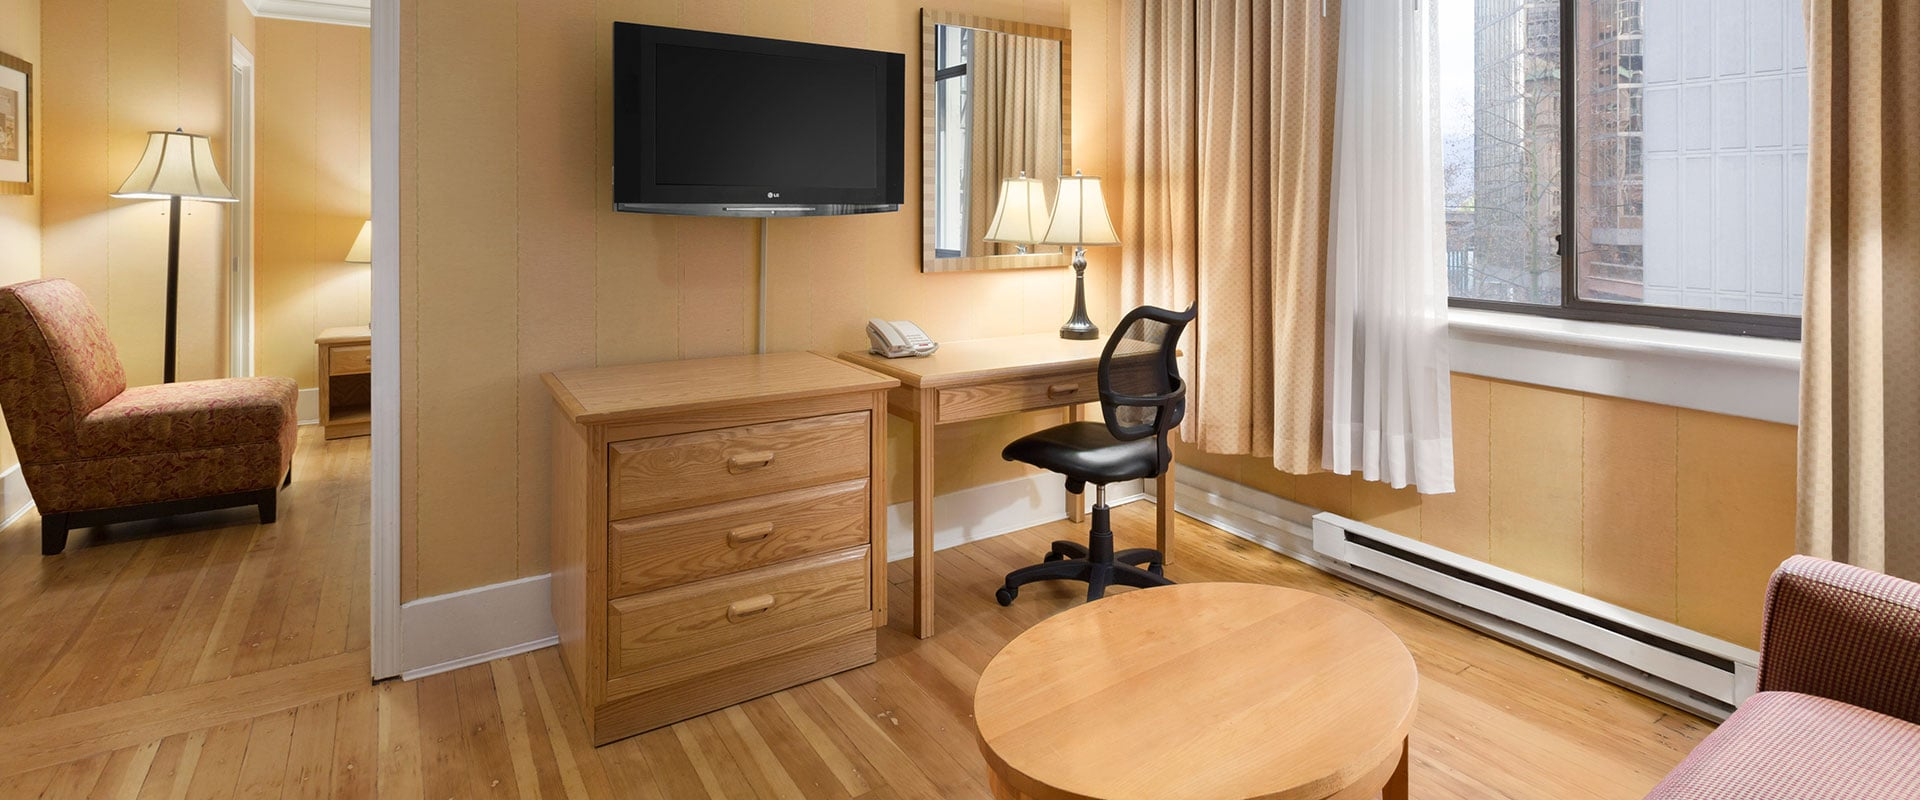 The living room of a tastefully furnished suite at Days Inn Vancouver Downtown features natural beige hardwood floors, coffee table, dresser, writing desk, and flatscreen TV.